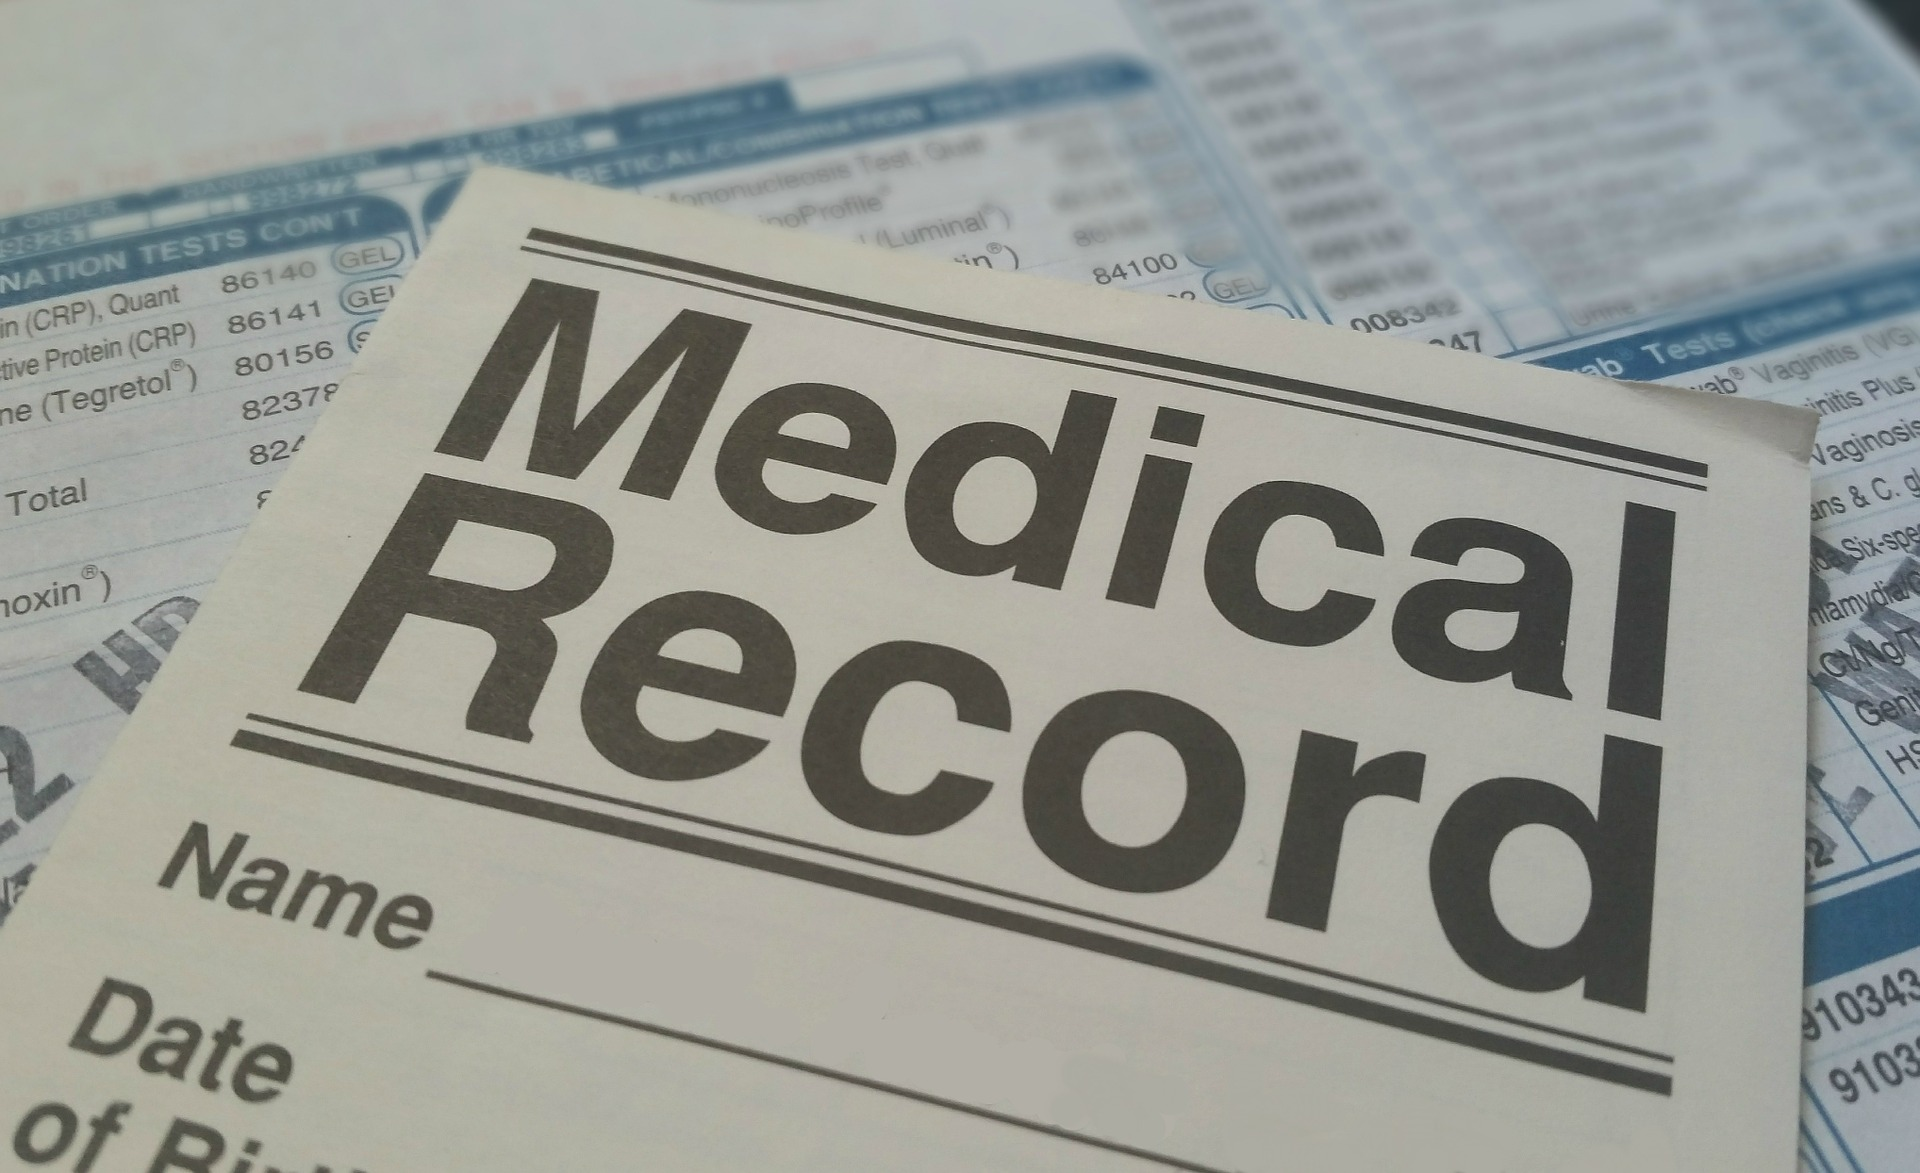 781422_1920_M_Medical Records_forms_Paper_document.jpg